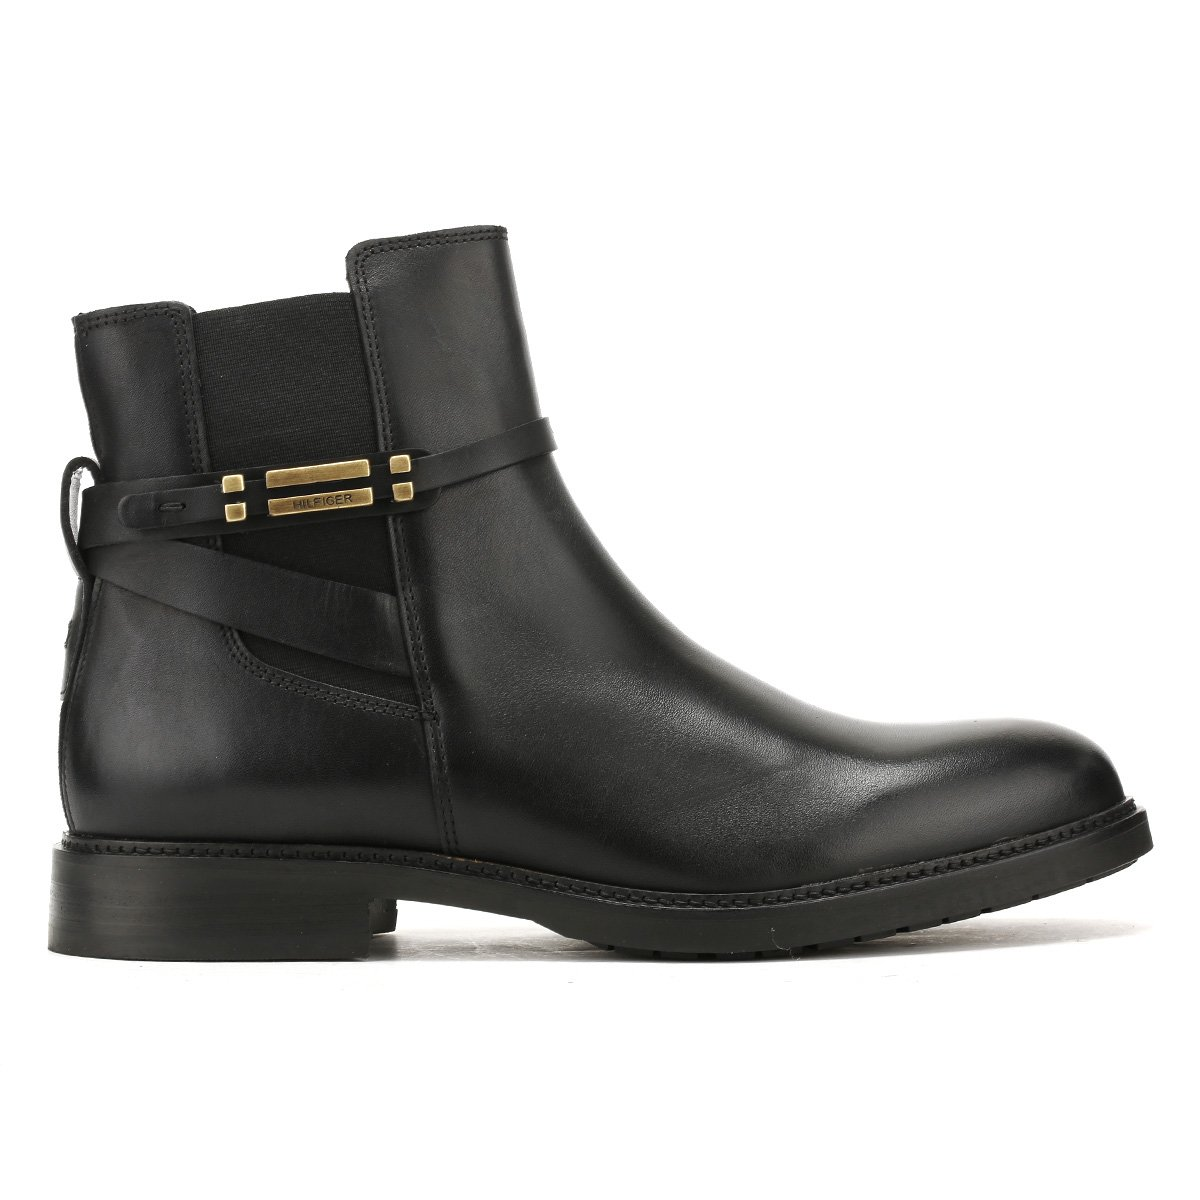 Tommy Hilfiger Holly Mujer Botas Negro: Amazon.es: Zapatos y complementos